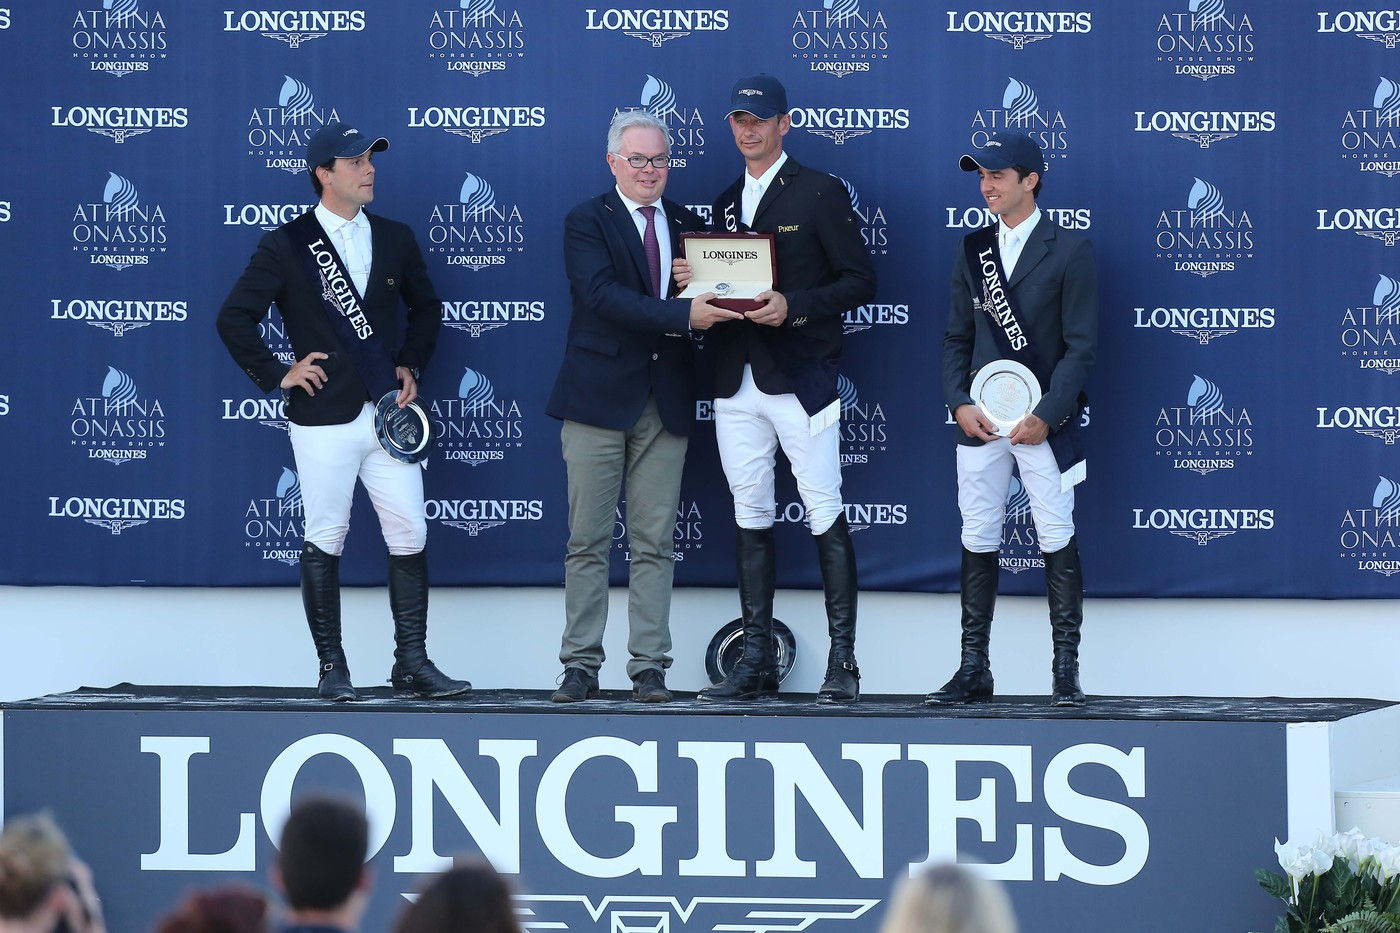 Longines Show Jumping Event: Marco Kutscher wins the Longines Grand Prix of the 2nd edition of the Longines Athina Onassis Horse Show 1